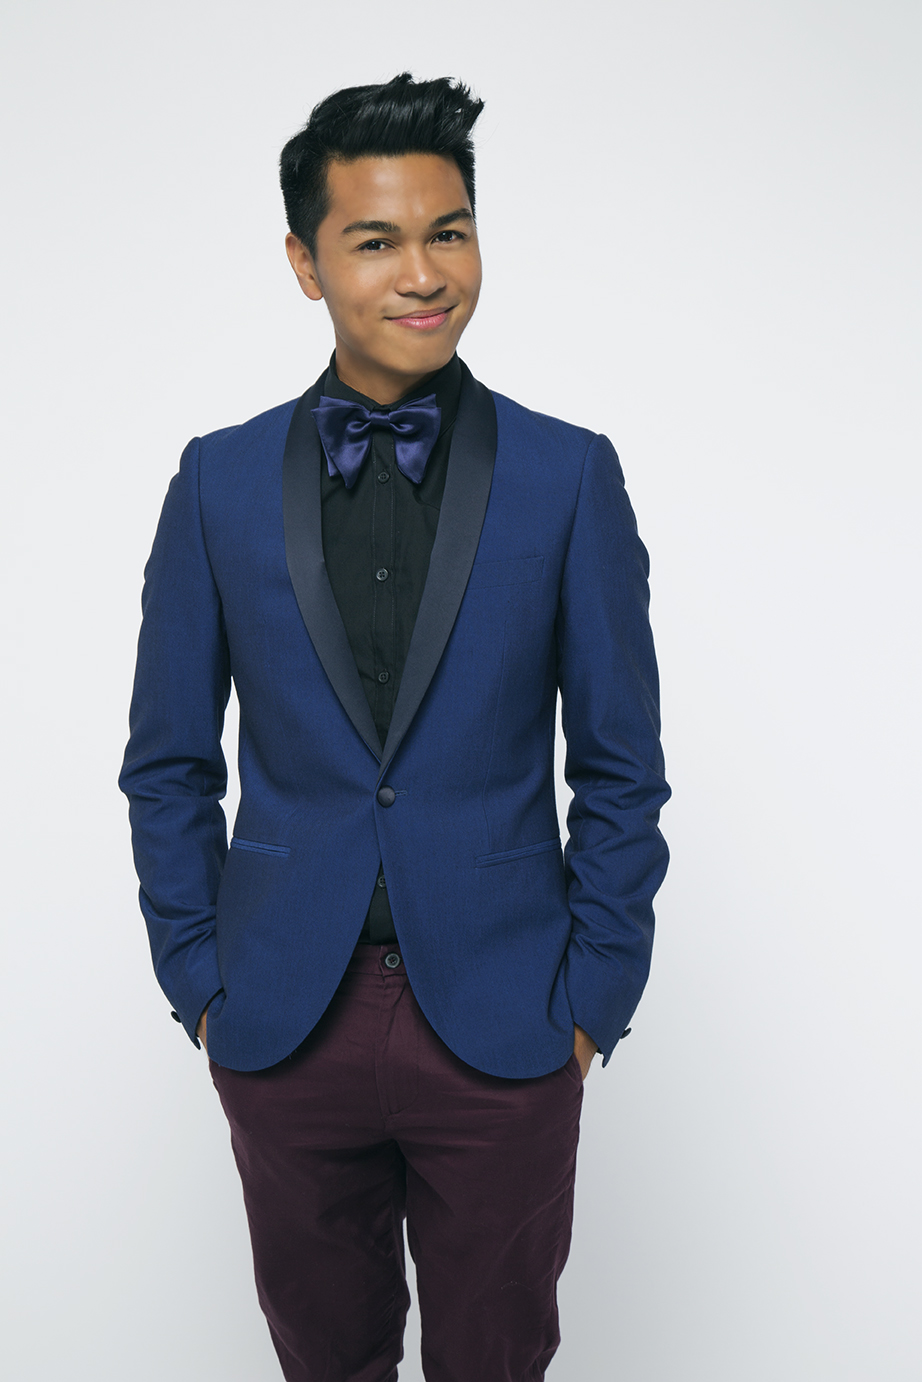 Name: VJ Rosales Birthdate: June 1987 Favorite Food: Pepperoni Pizza Parents Originally From: Bataan & Cavite VJ is a young aspiring musician with a degree in music from Cal State, Long Beach. Before The #SingOff , VJ was a contestant on Season 3 of NBC's The Voice. When VJ isn't singing one of his favorite things to do is chill out and watch his favorite show, Friends. Born and raised in Los Angeles, CA.  He started singing at the age of 3.  Vj currently performs all over the greater Los Angeles area as a freelance musician and singer/songwriter.  He teaches voice and piano at the renowned Silverlake Conservatory of Music, owned by the Red Hot Chili Peppers.